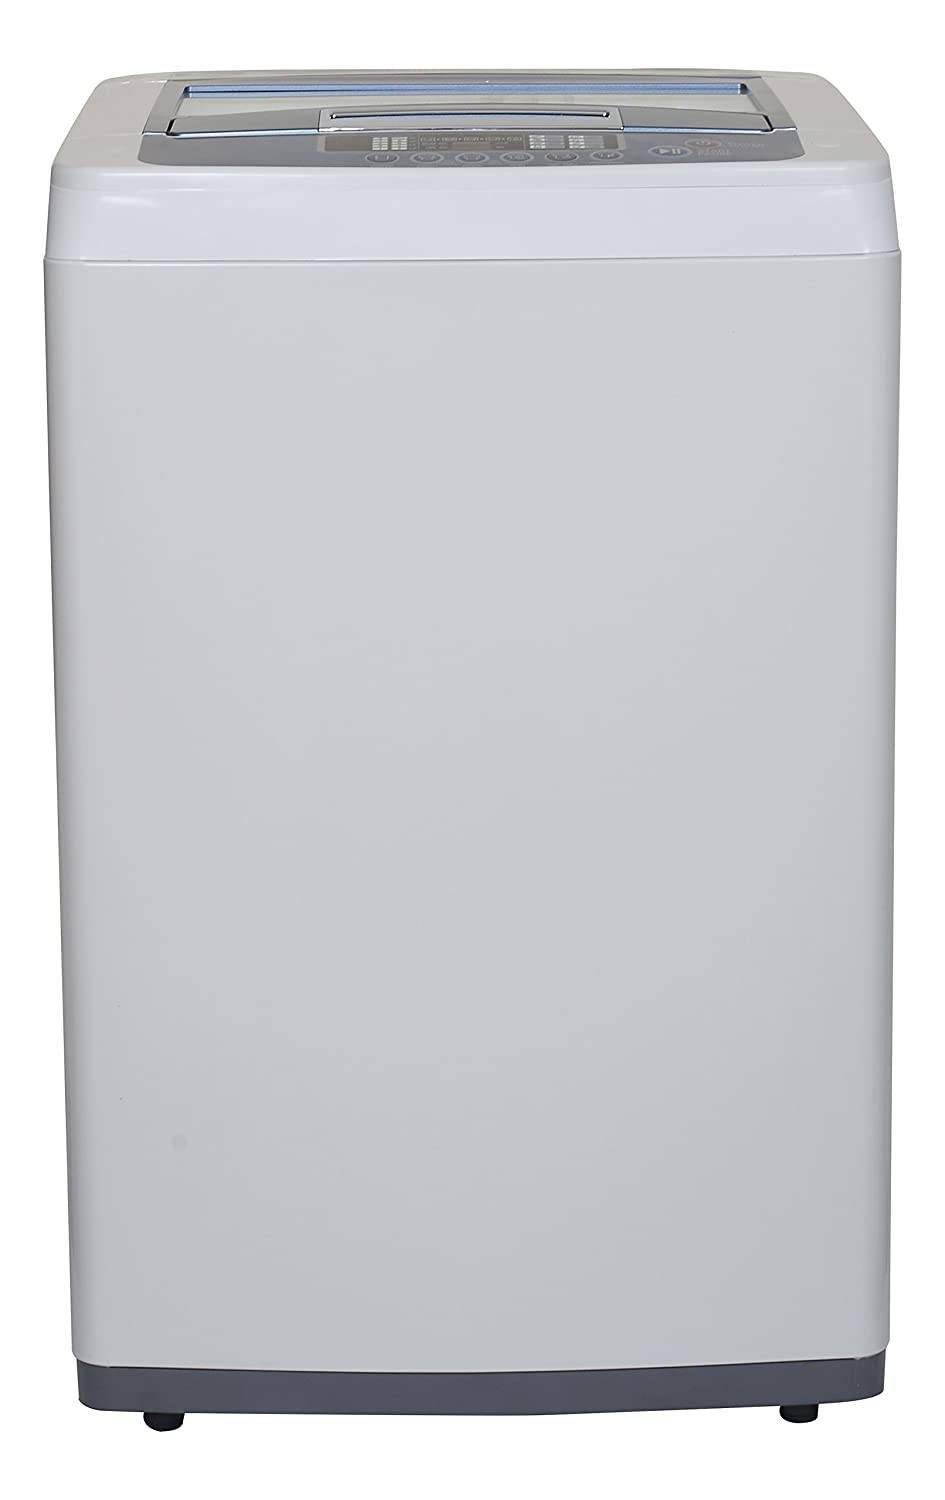 Lg 62 Kg Fully Automatic Top Loading Washing Machine T72cmg22p Motor Wiring Diagram Besides Marine Blue Cool Grey Home Kitchen